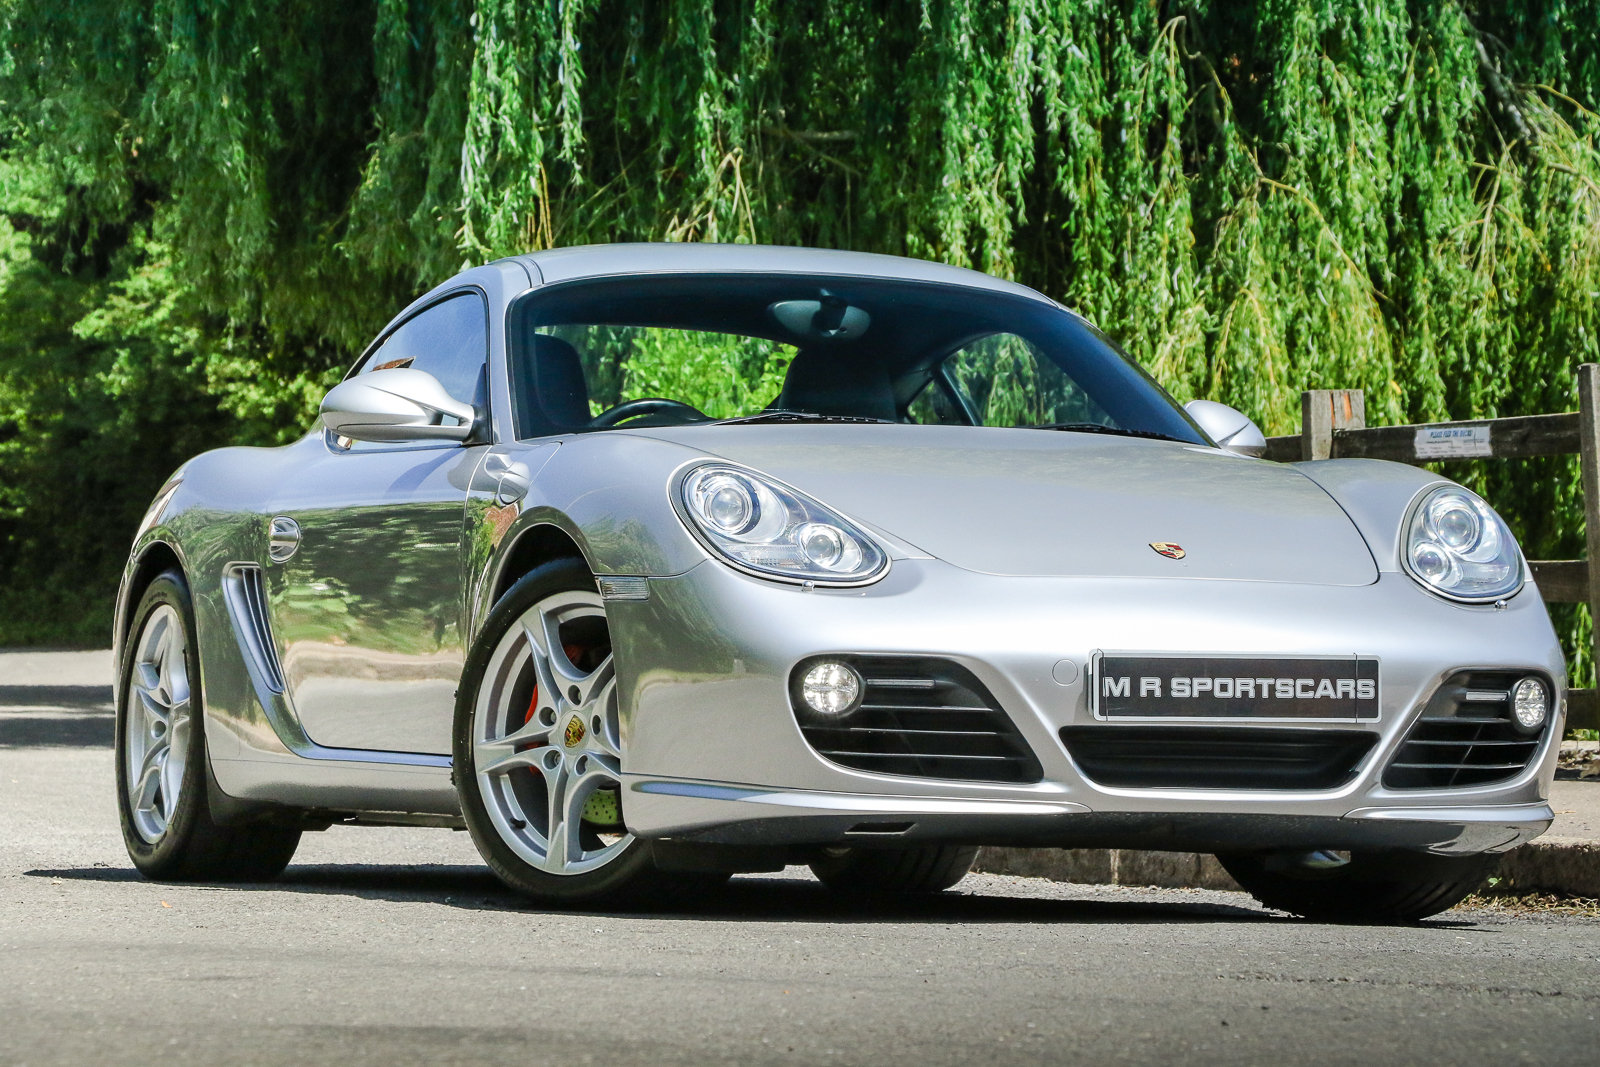 2009 Porsche Cayman S 987.2 Gen 2 GT Silver Metallic PASM For Sale (picture 6 of 6)